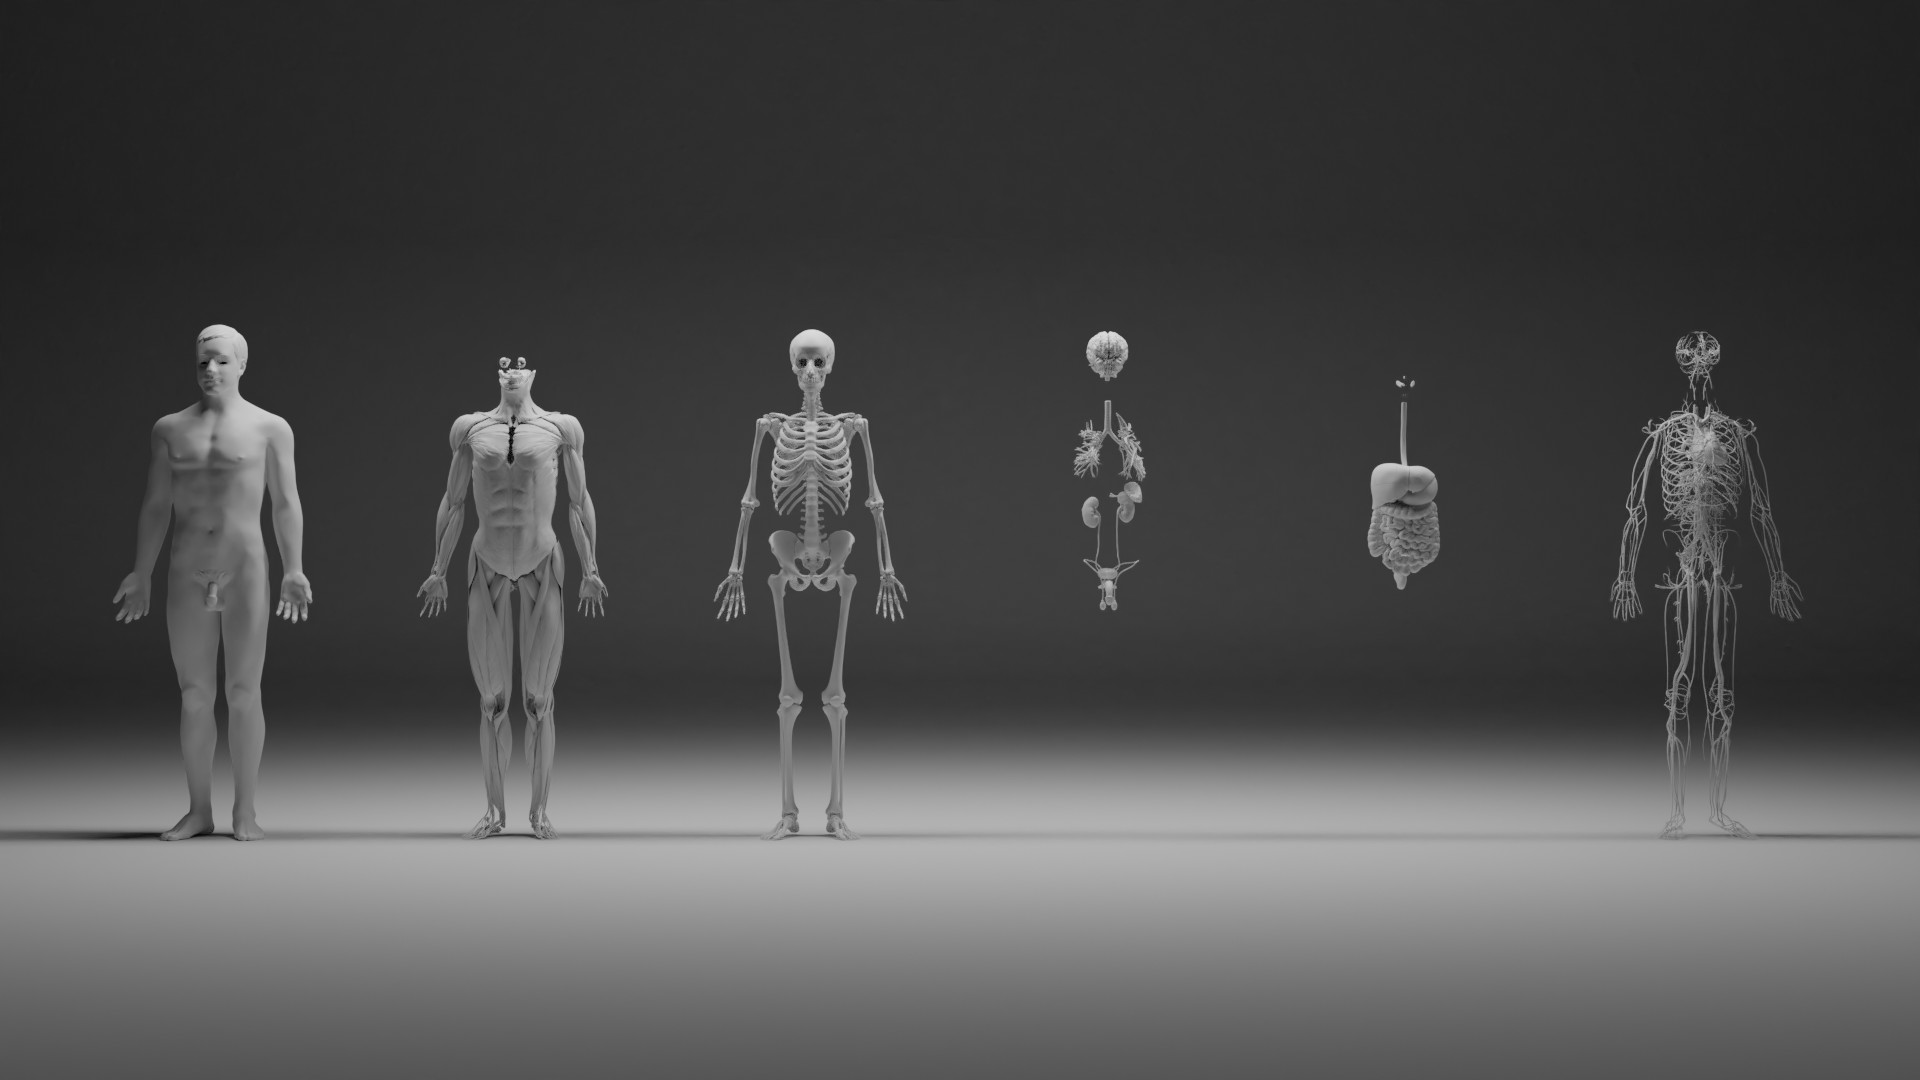 Male human with separated anatomical systems preview image 1